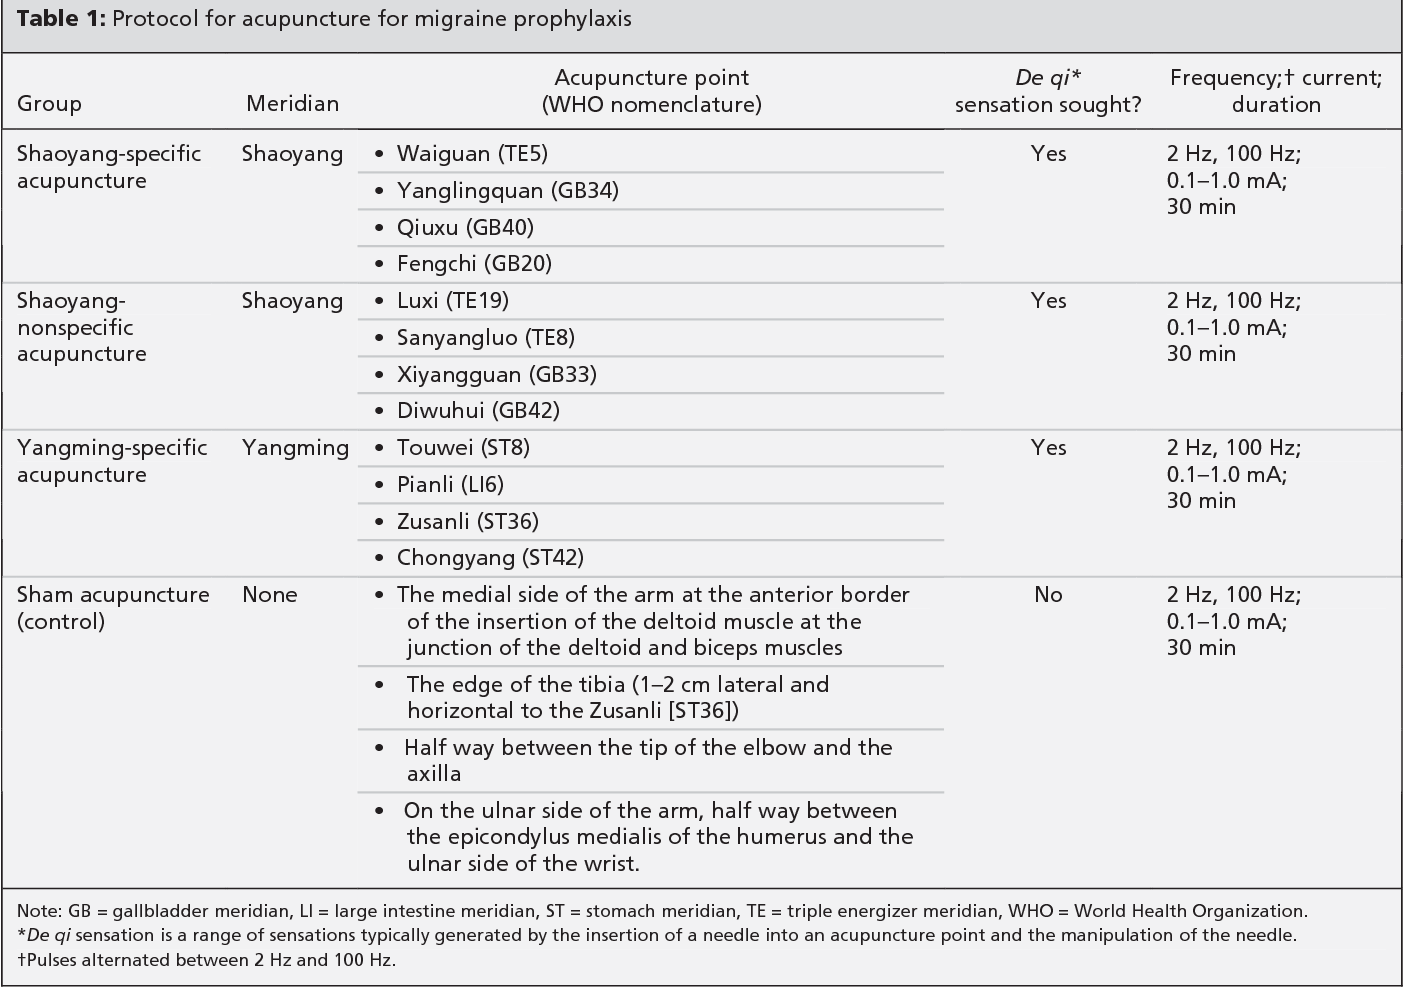 Table 1 from Acupuncture for migraine prophylaxis: a randomized